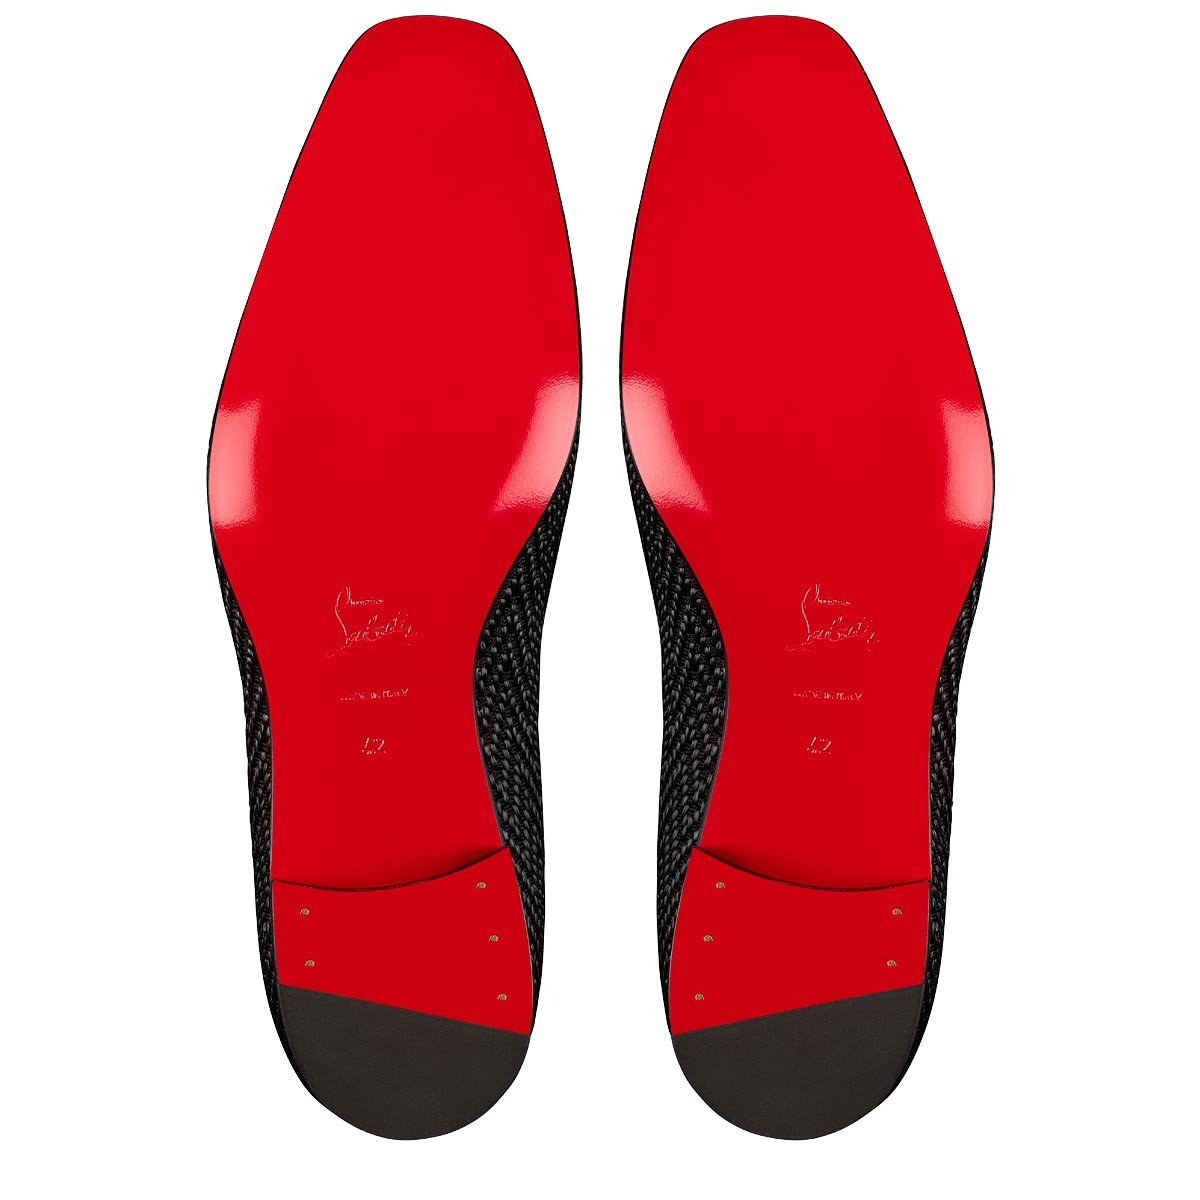 Shoes - Officialito Flat - Christian Louboutin